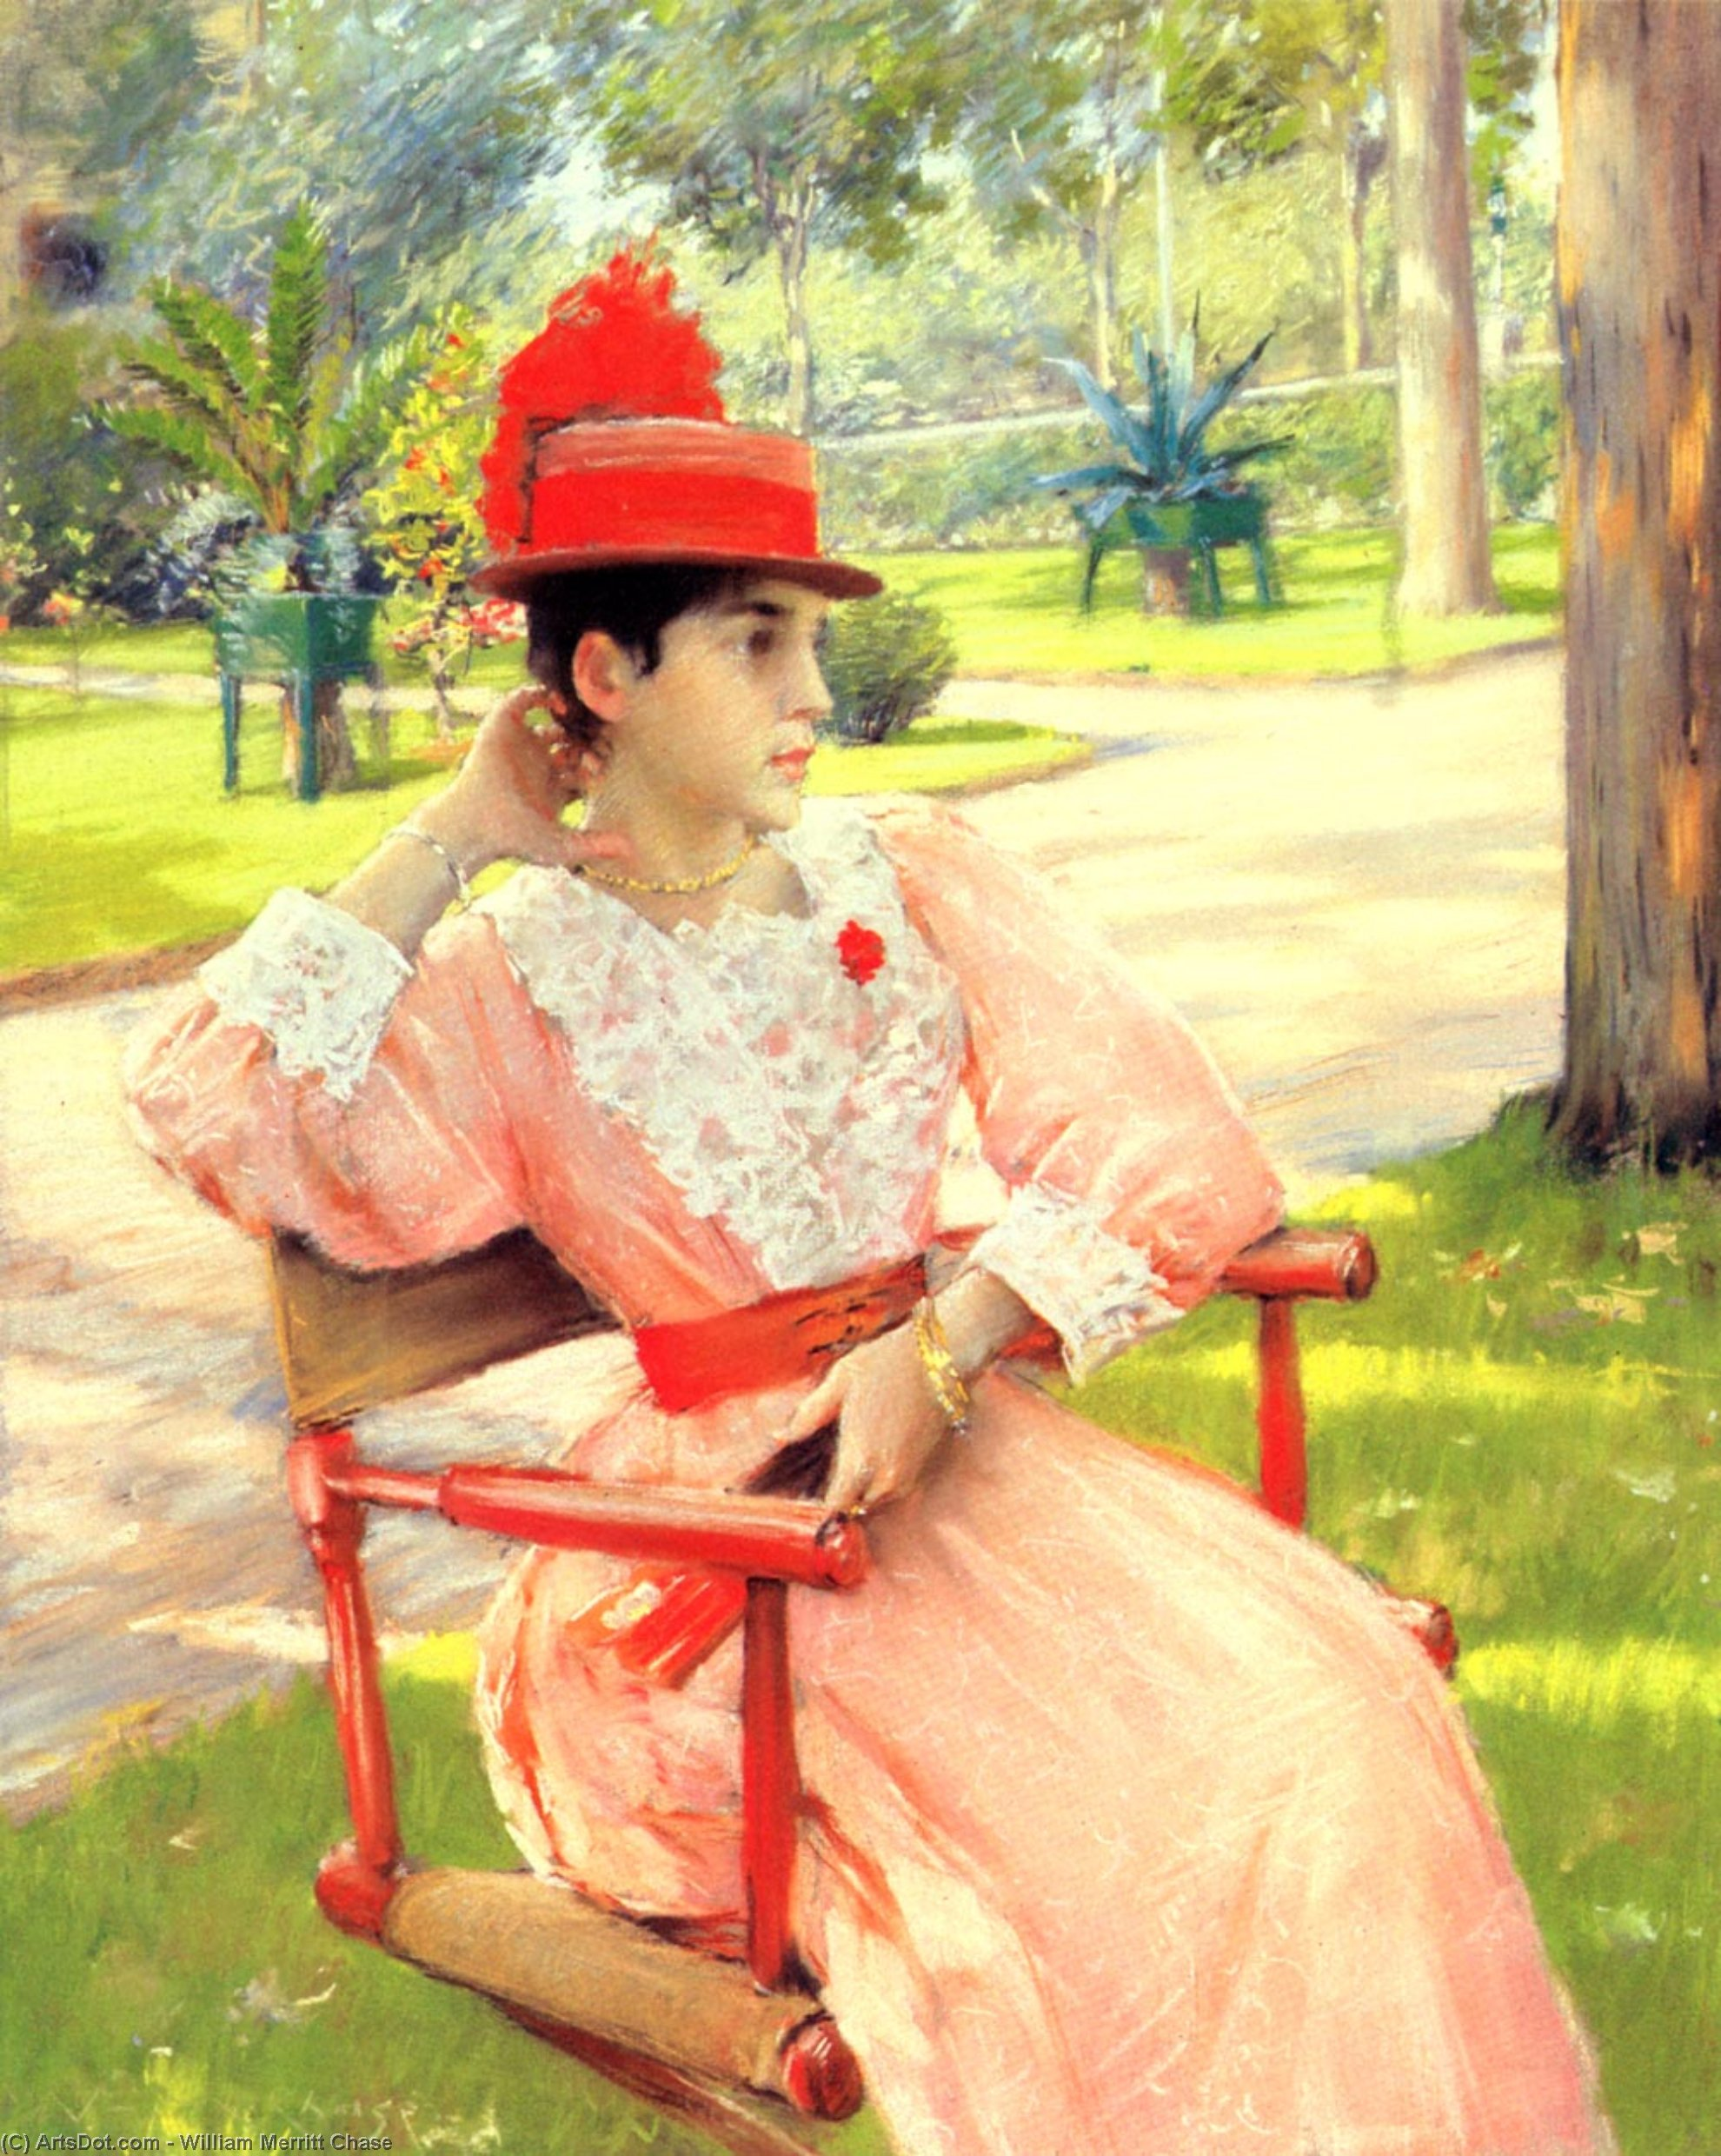 Afternoon In The Park, Pastel by William Merritt Chase (1849-1916, United States)